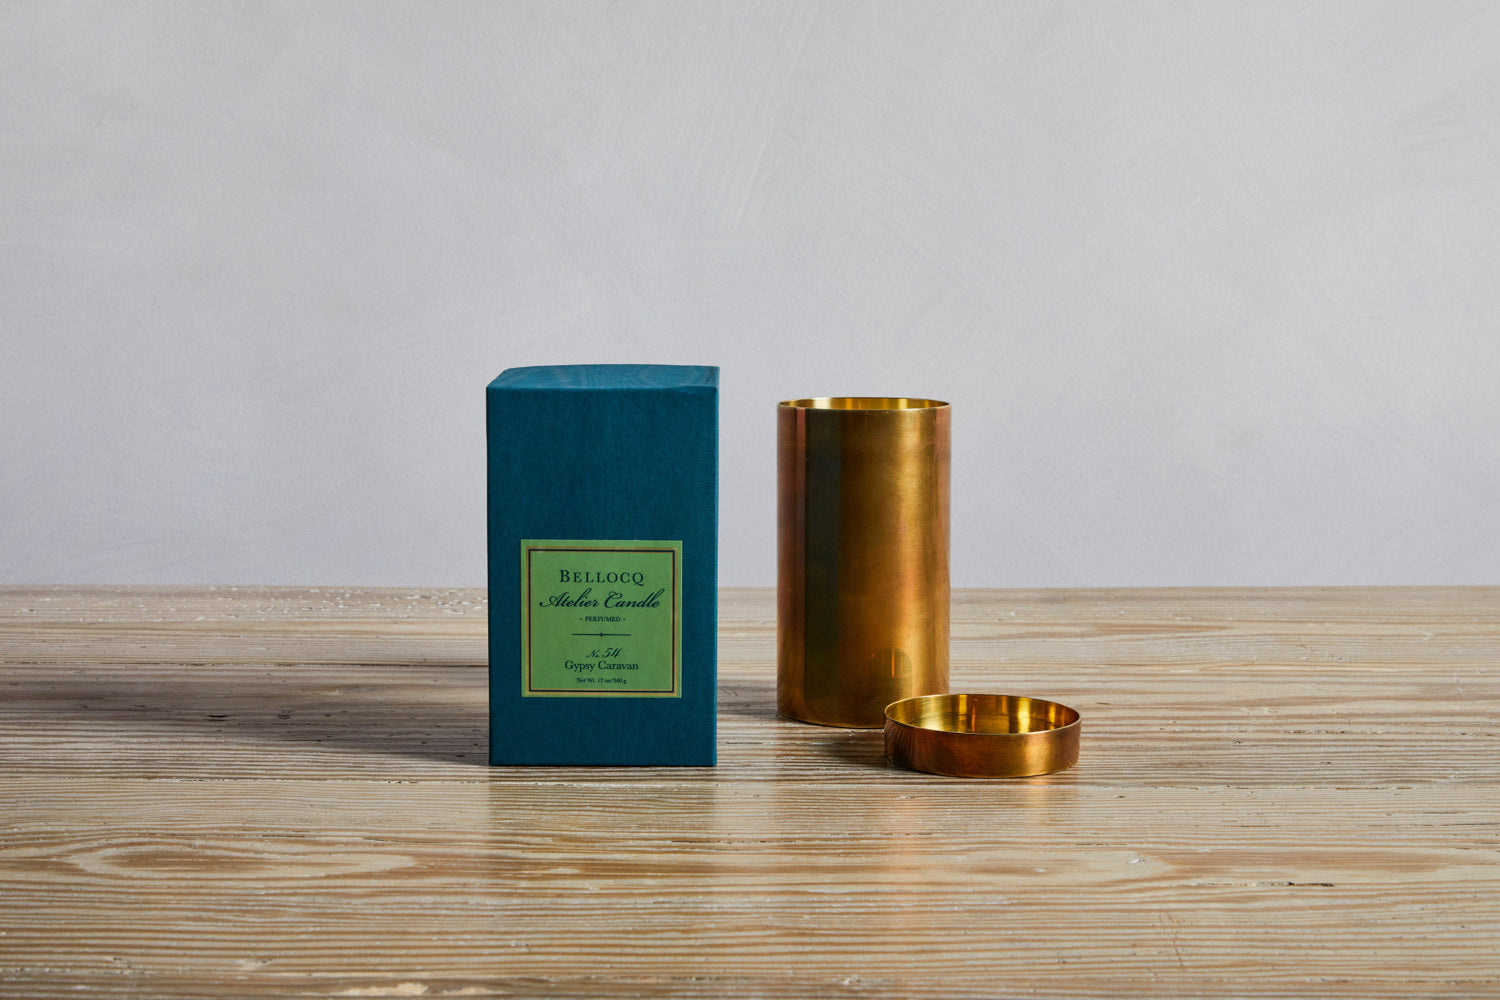 One Bellocq Atelier Gypsy Caravan Candle and box.